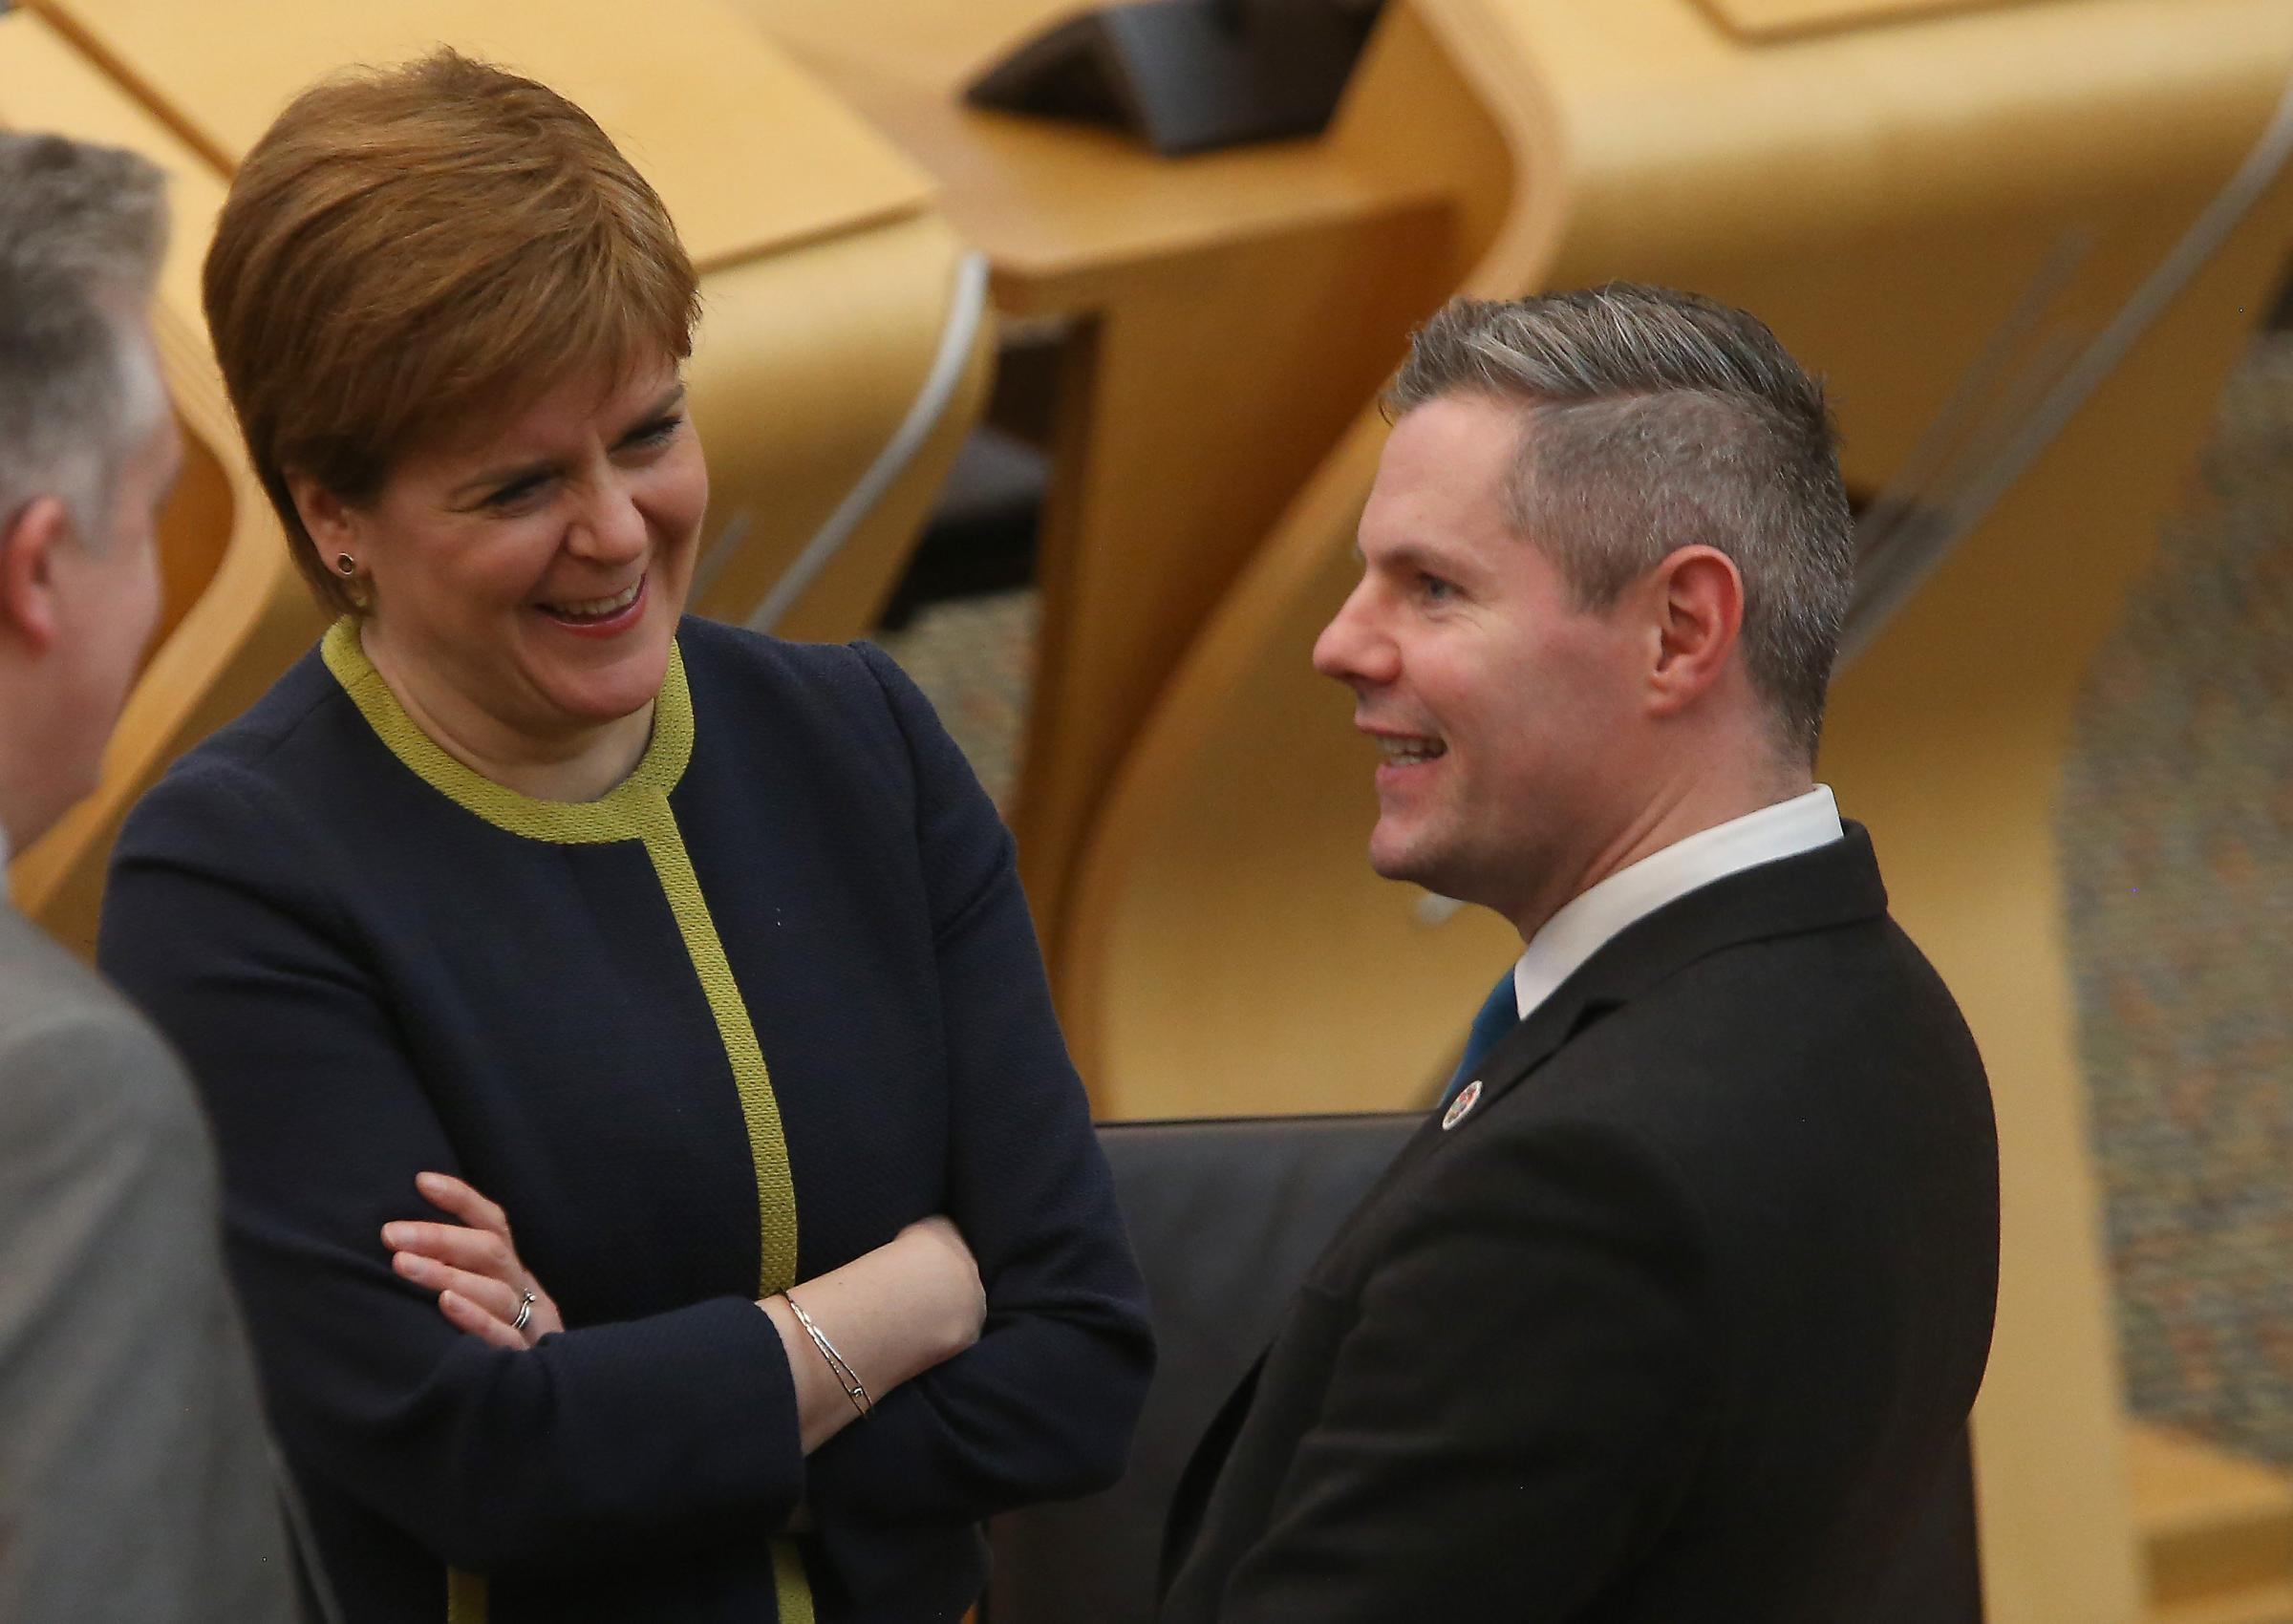 SNP's Mackay hits mark on Brexit amid independence poll sound and fury